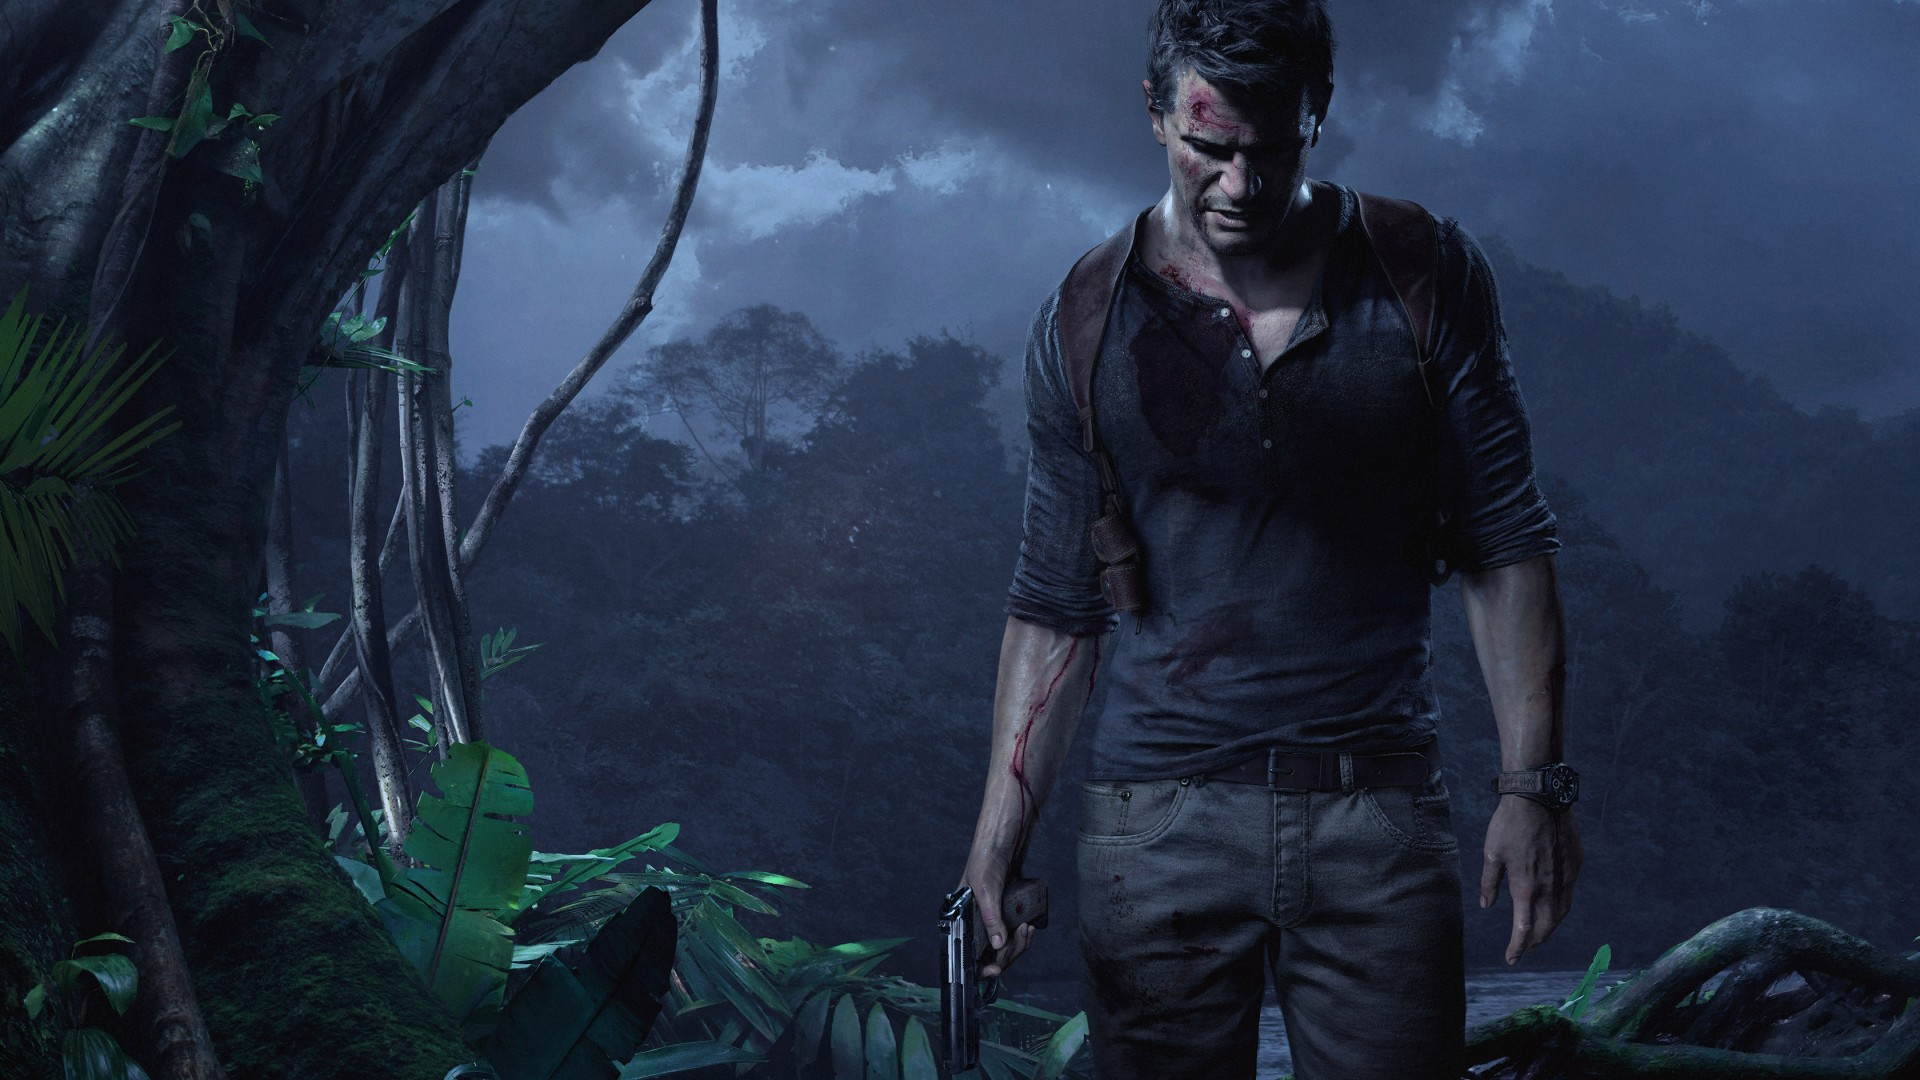 Uncharted 4: A Thief's End, game, jungle, night, gun, screenshot, 4k, 5k, PC, 2015 (horizontal)